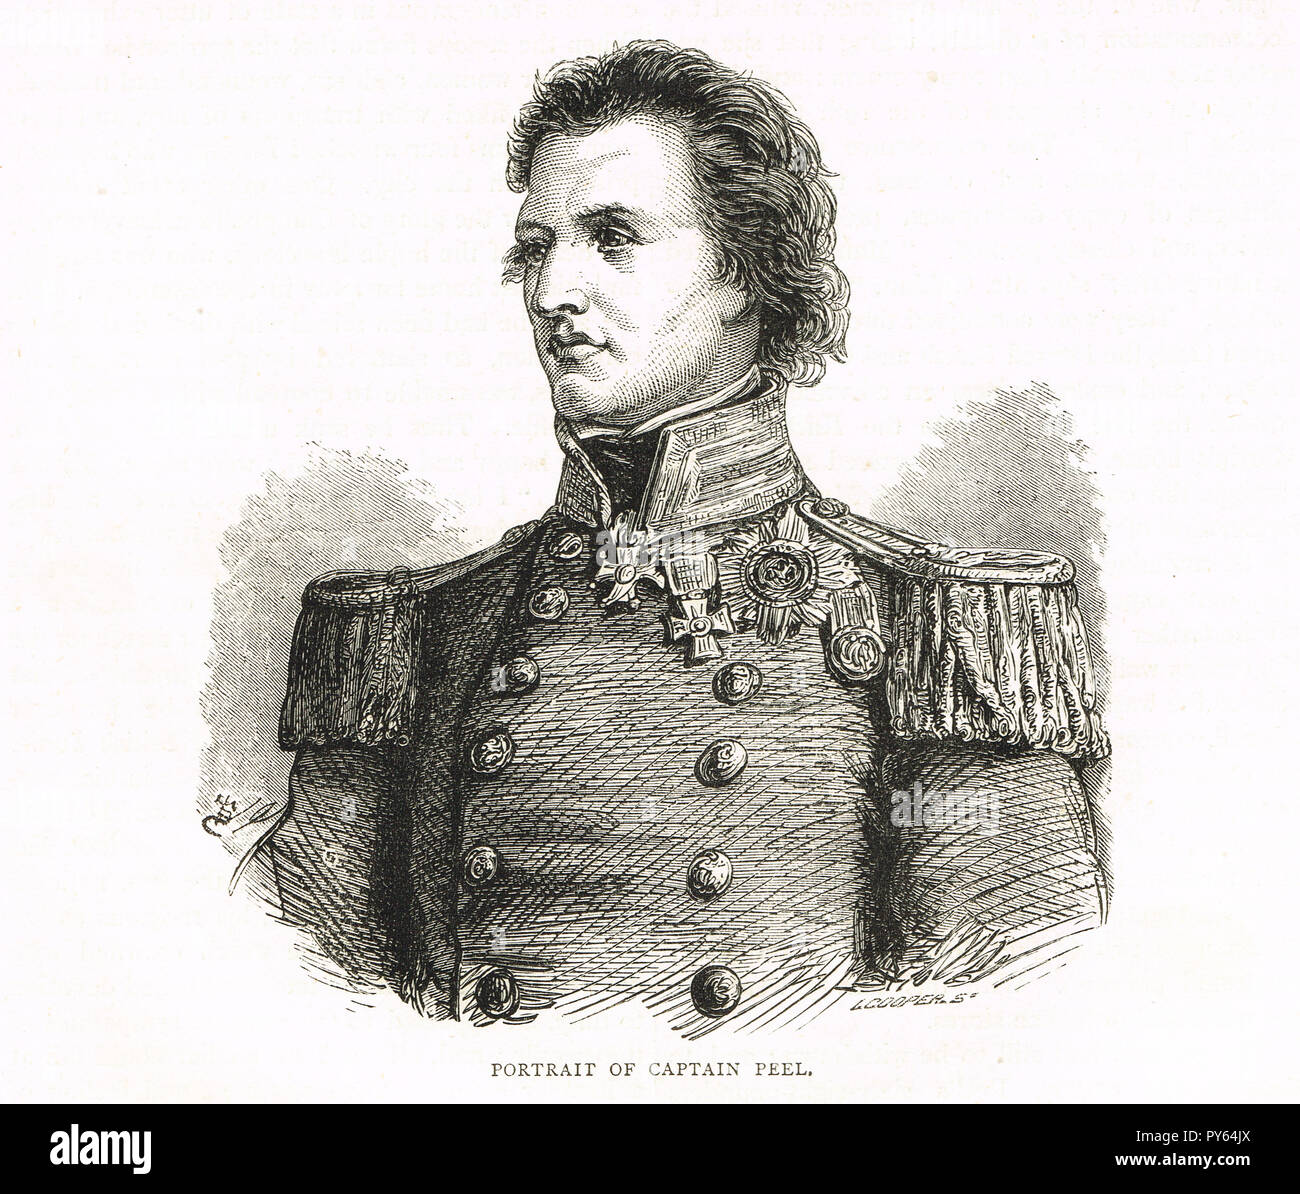 Captain Sir William Peel, third son of Prime Minister Sir Robert Peel.  Recipient of the Victoria Cross, picked up a live shell with fuse still burning, 18 October 1854 at the Siege of Sevastopol - Stock Image